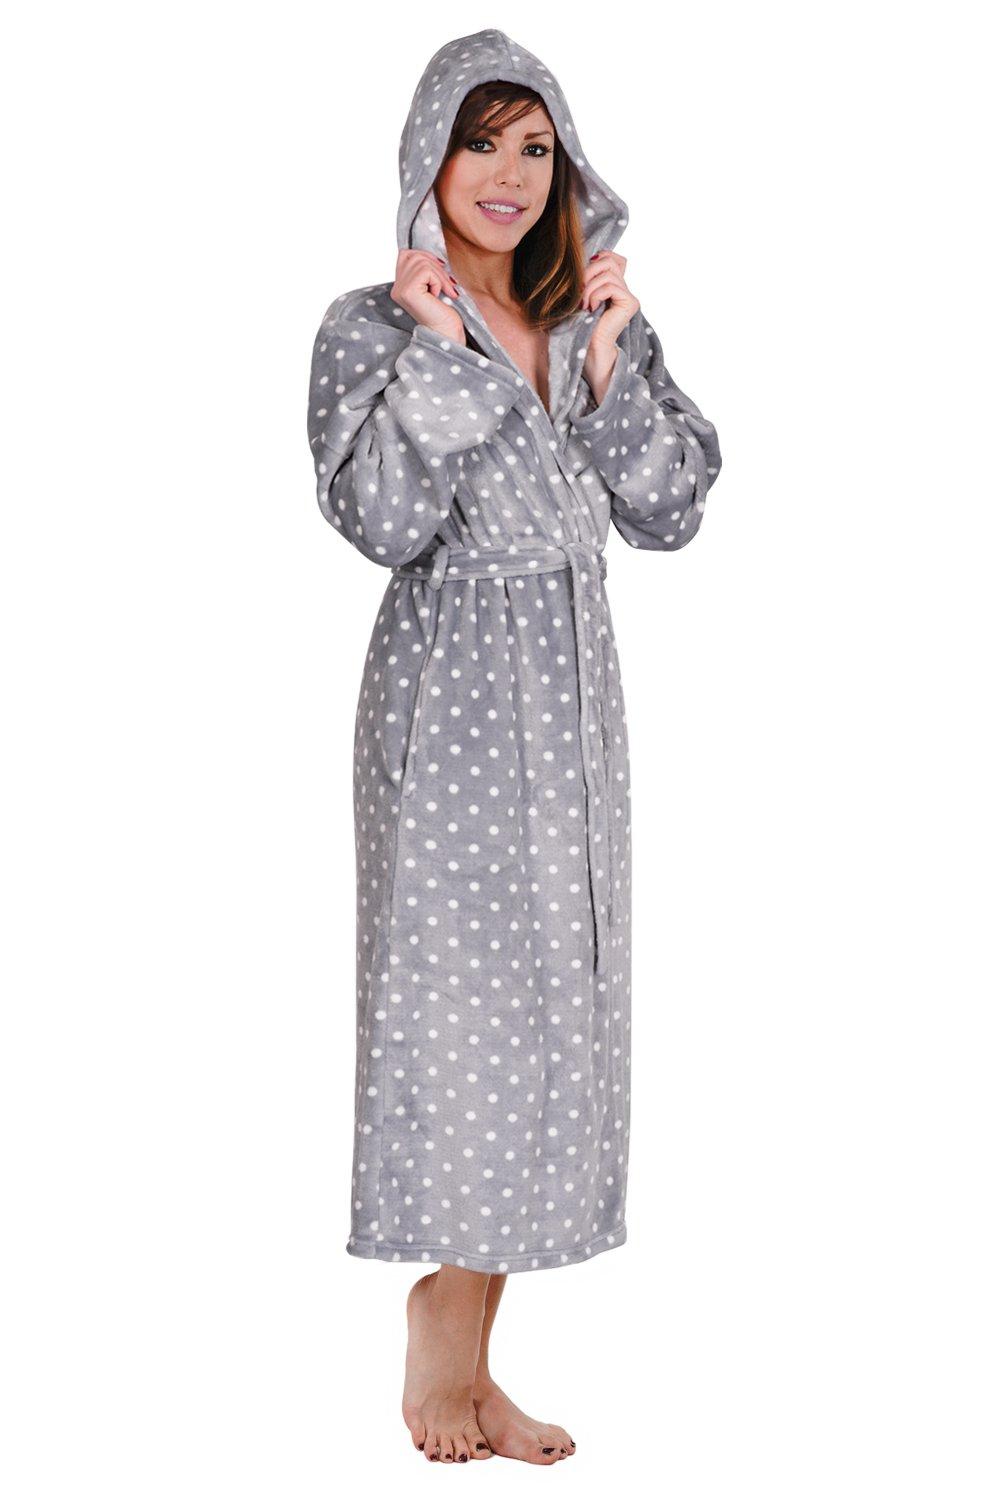 Hoodie Robe Hooded Robe Spa Bathrobe Hoody Robe Long Robe … (4X, Gray Polka Dot)